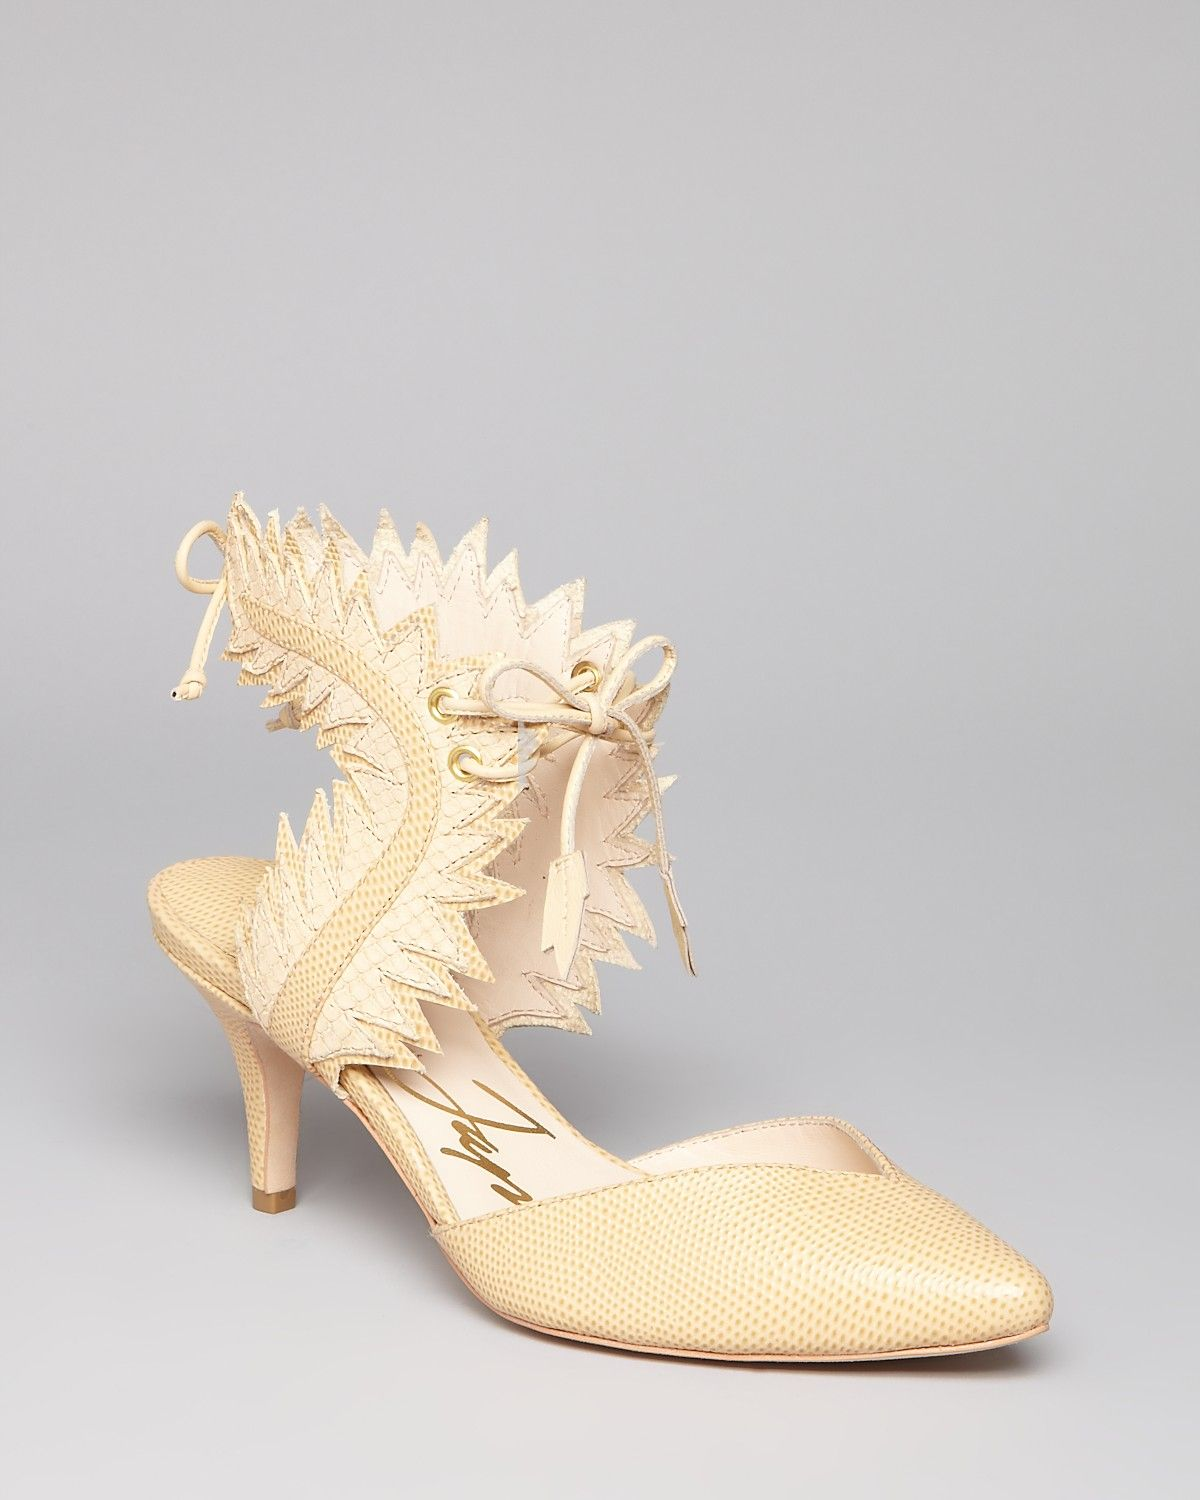 Isa Tapia Pumps - Myrna Asymetric | Bloomingdale's---More from my sister from another mister